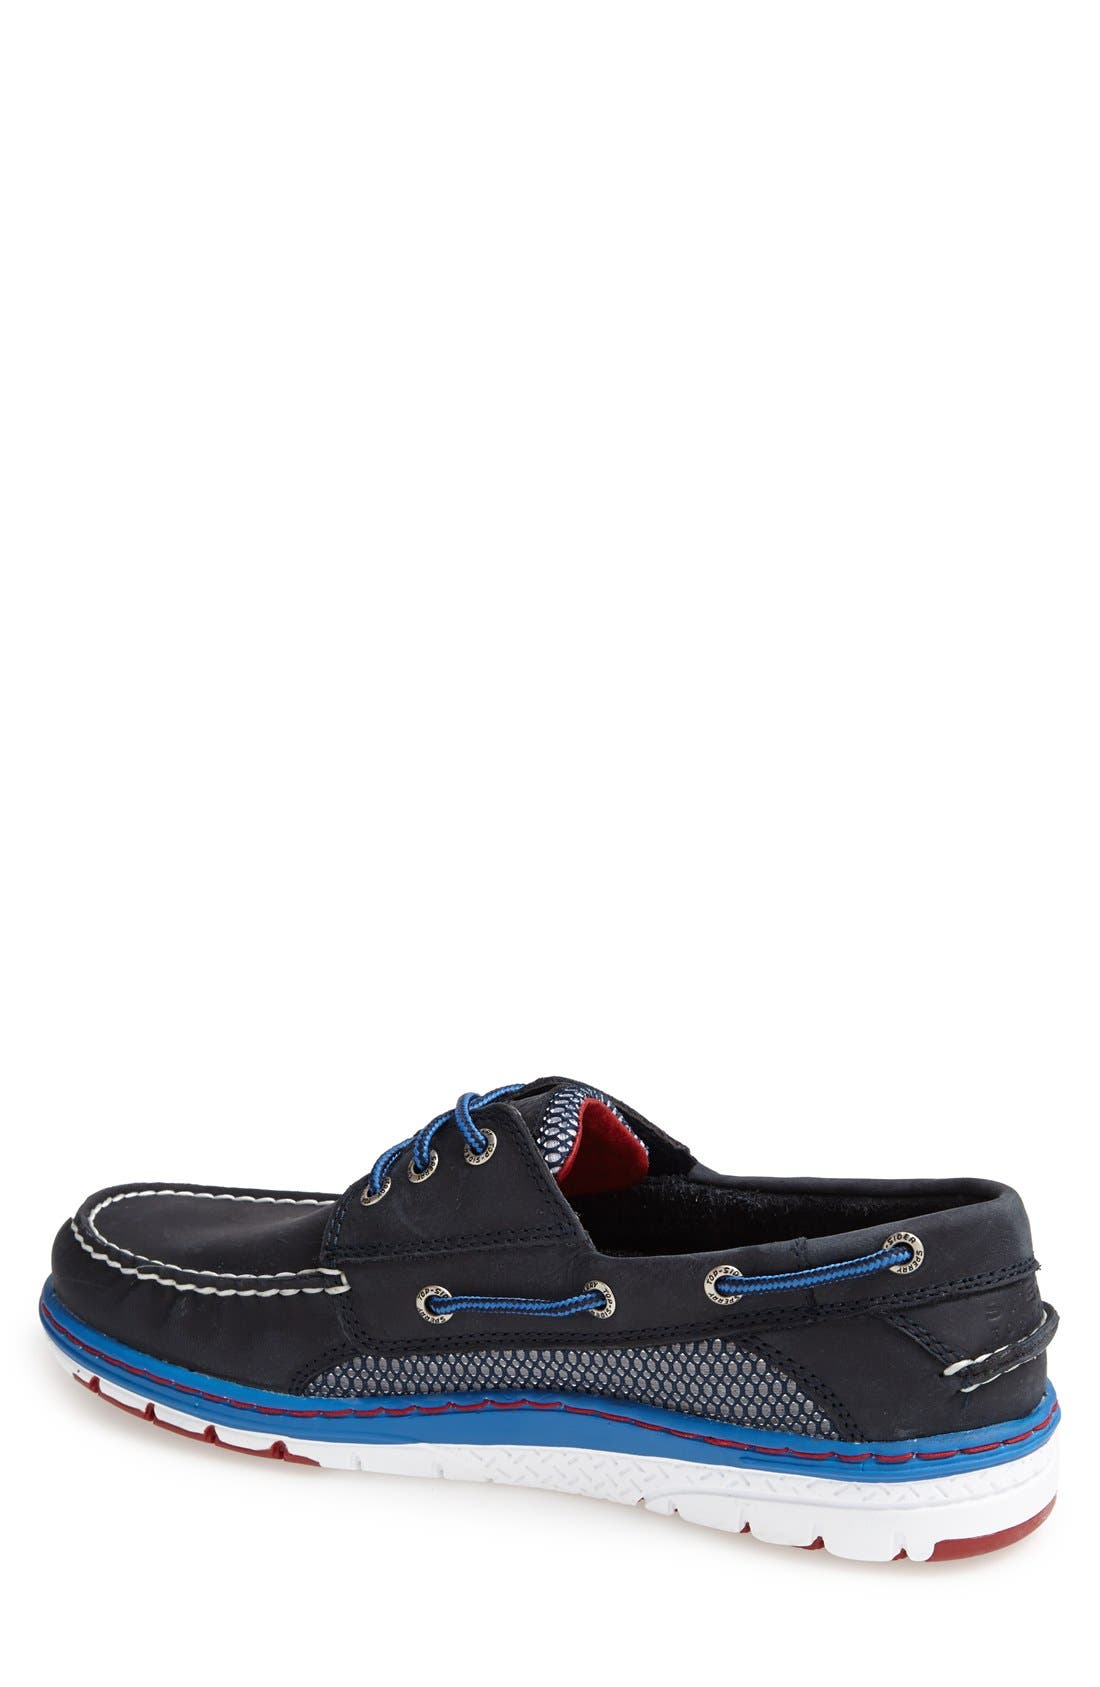 'Billfish Ultralite' Boat Shoe,                             Alternate thumbnail 79, color,